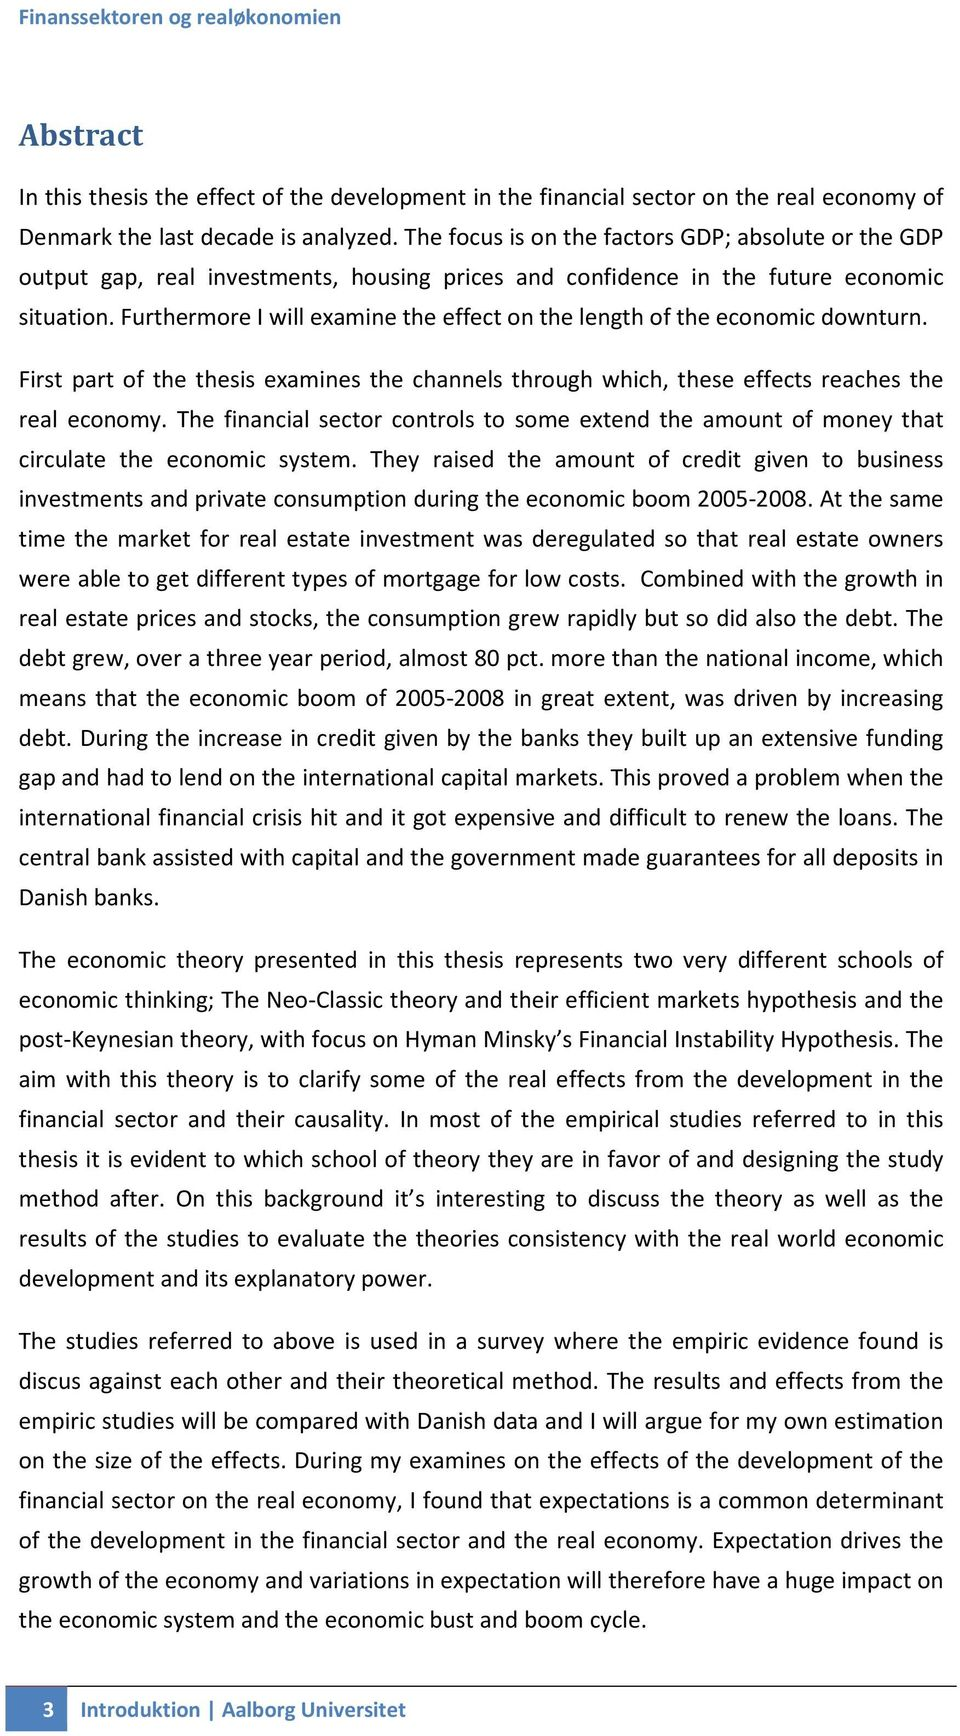 Furthermore I will examine the effect on the length of the economic downturn. First part of the thesis examines the channels through which, these effects reaches the real economy.